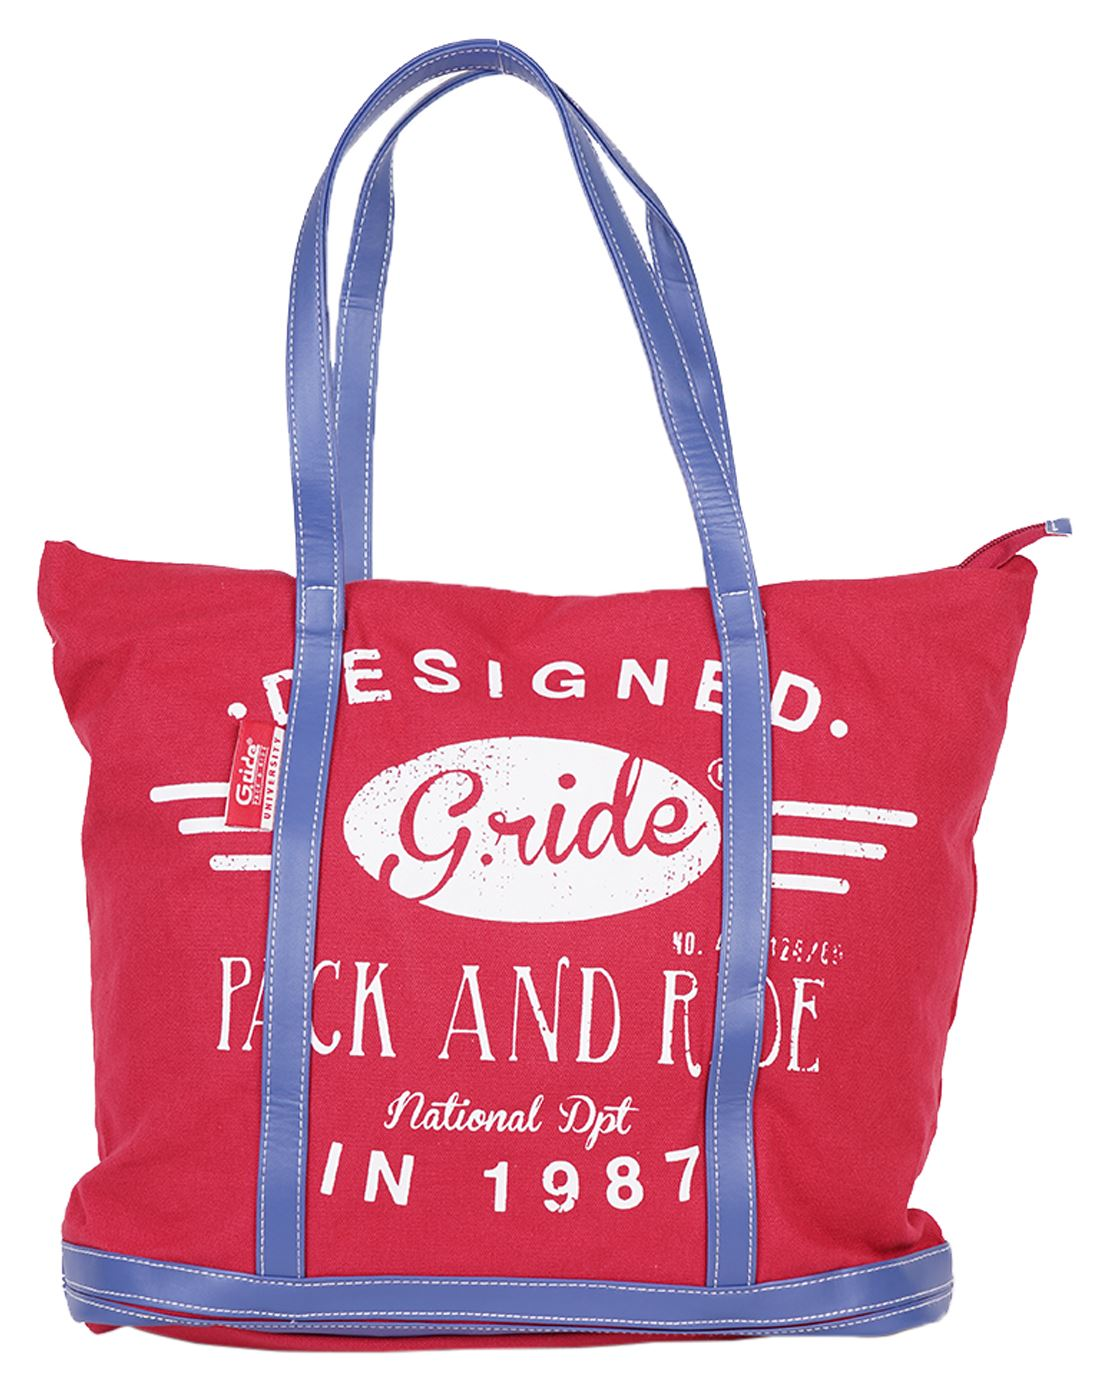 Celine Shopping Bag (Red) by G.ride